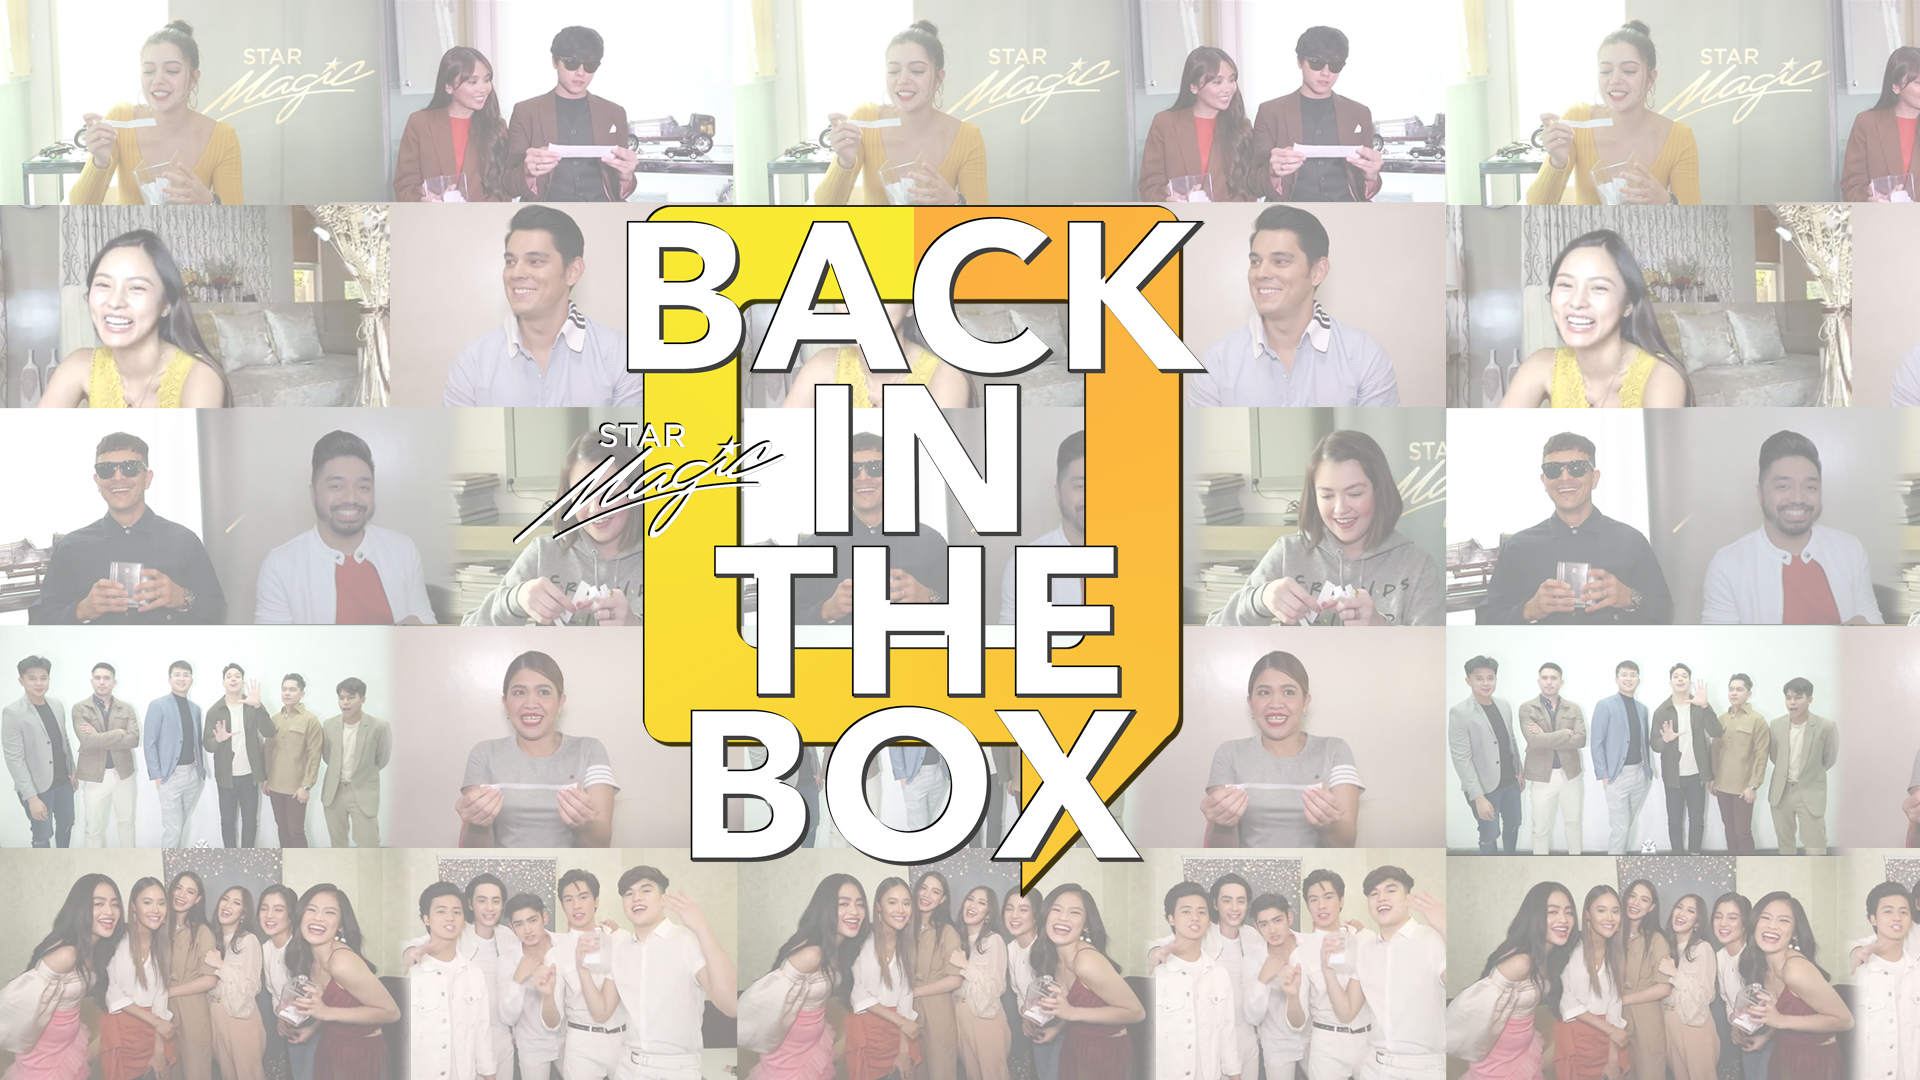 Rewind back to the best random questions and funny challenges | Back in the Box